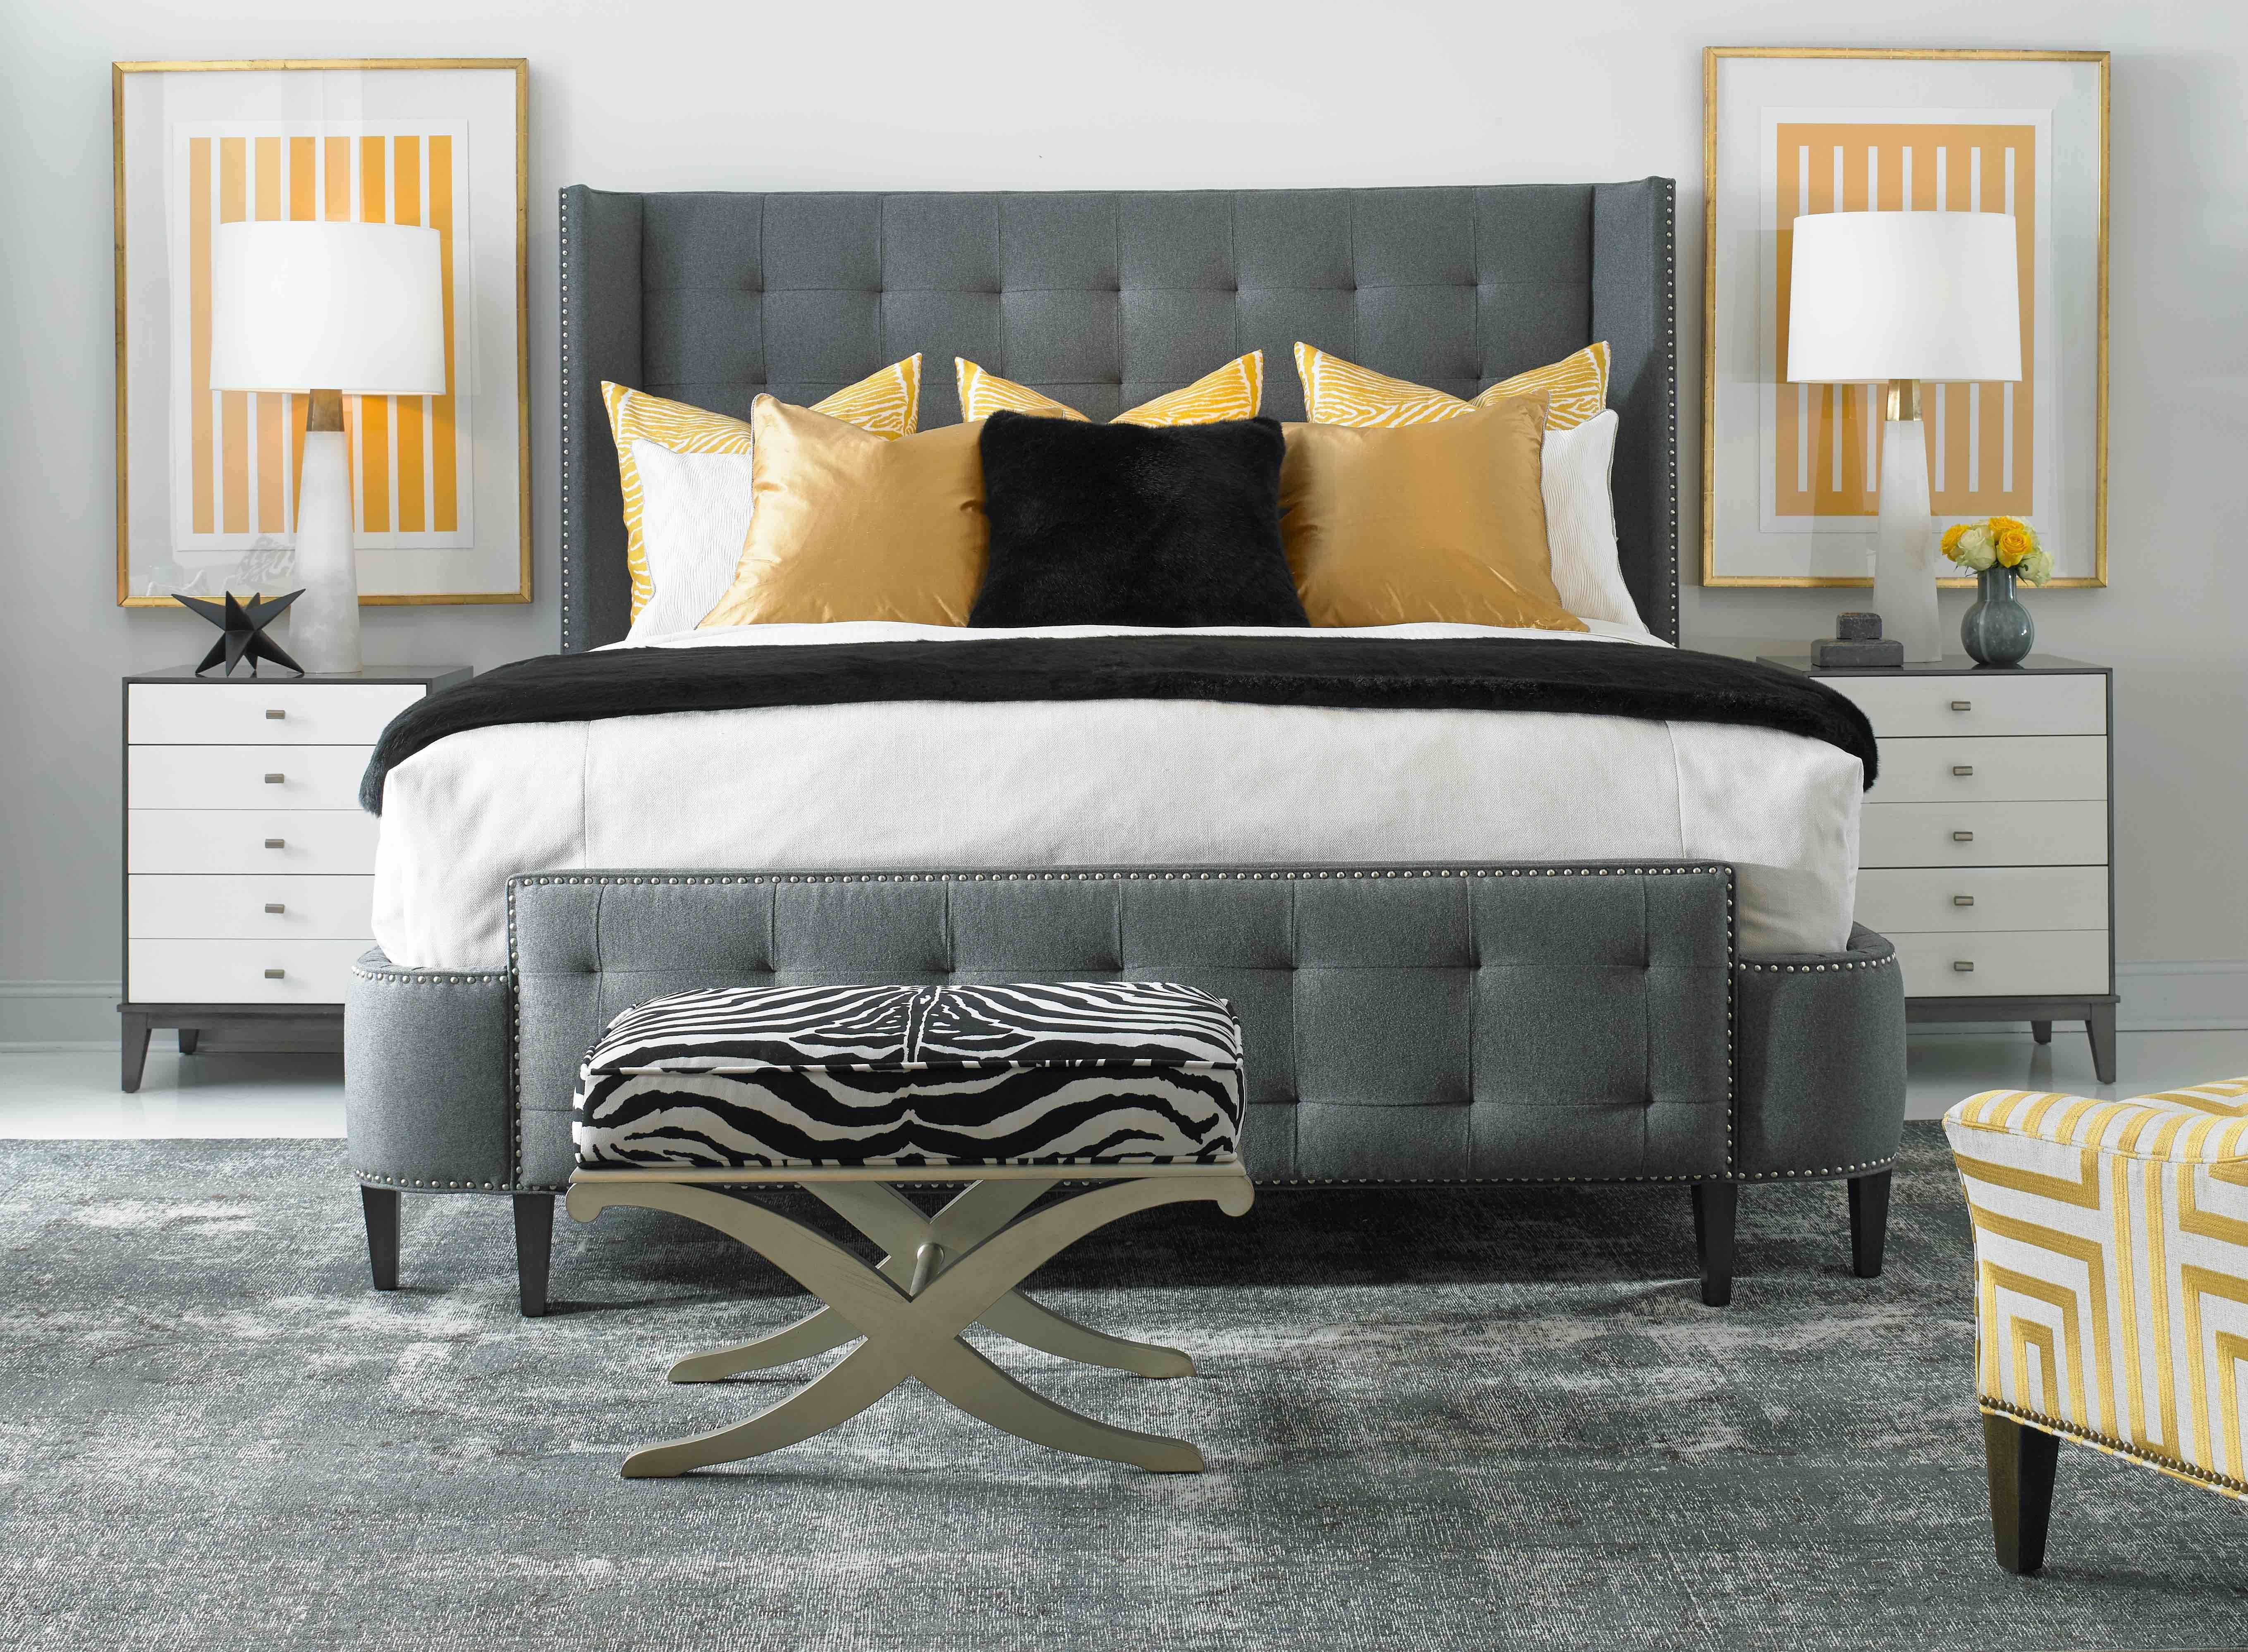 Our luxury, designer Upholstered, Wood and Poster beds are